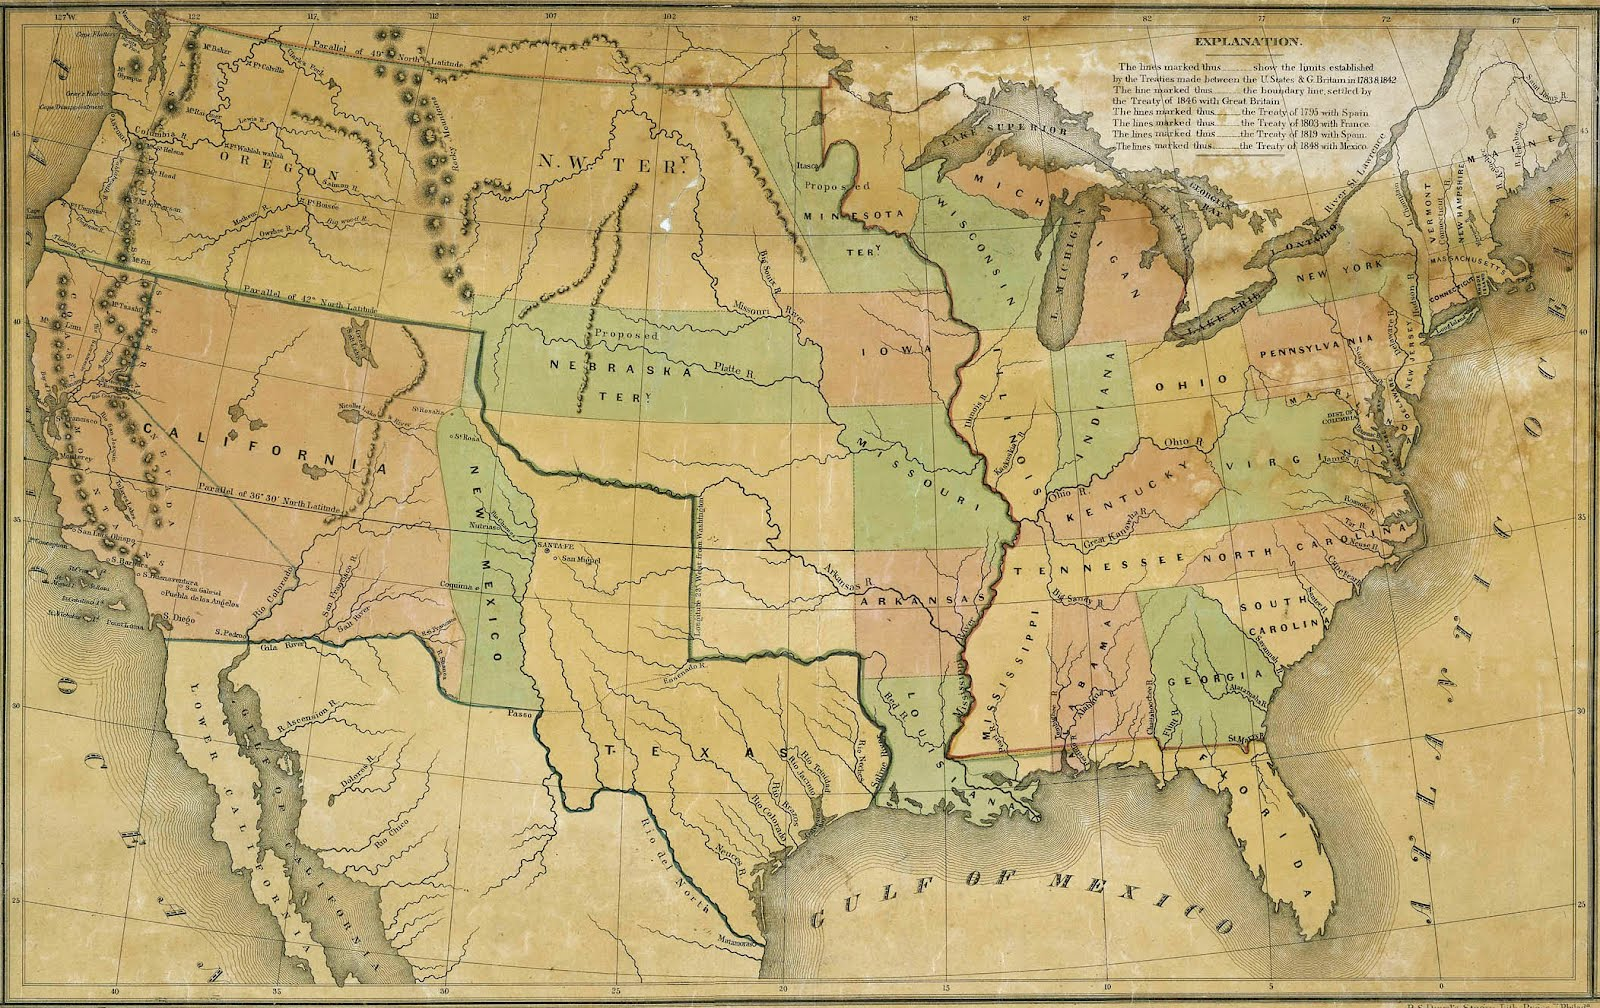 What Is Manifest Destiny? – The Art of Manifest Destiny United States Map on u.s. railroad map 1849, california map 1849, mexico map 1849, wisconsin map 1849, arizona map 1849, boston map 1849, texas map 1849, world map 1849, greece map 1849, nevada map 1849, europe map 1849,